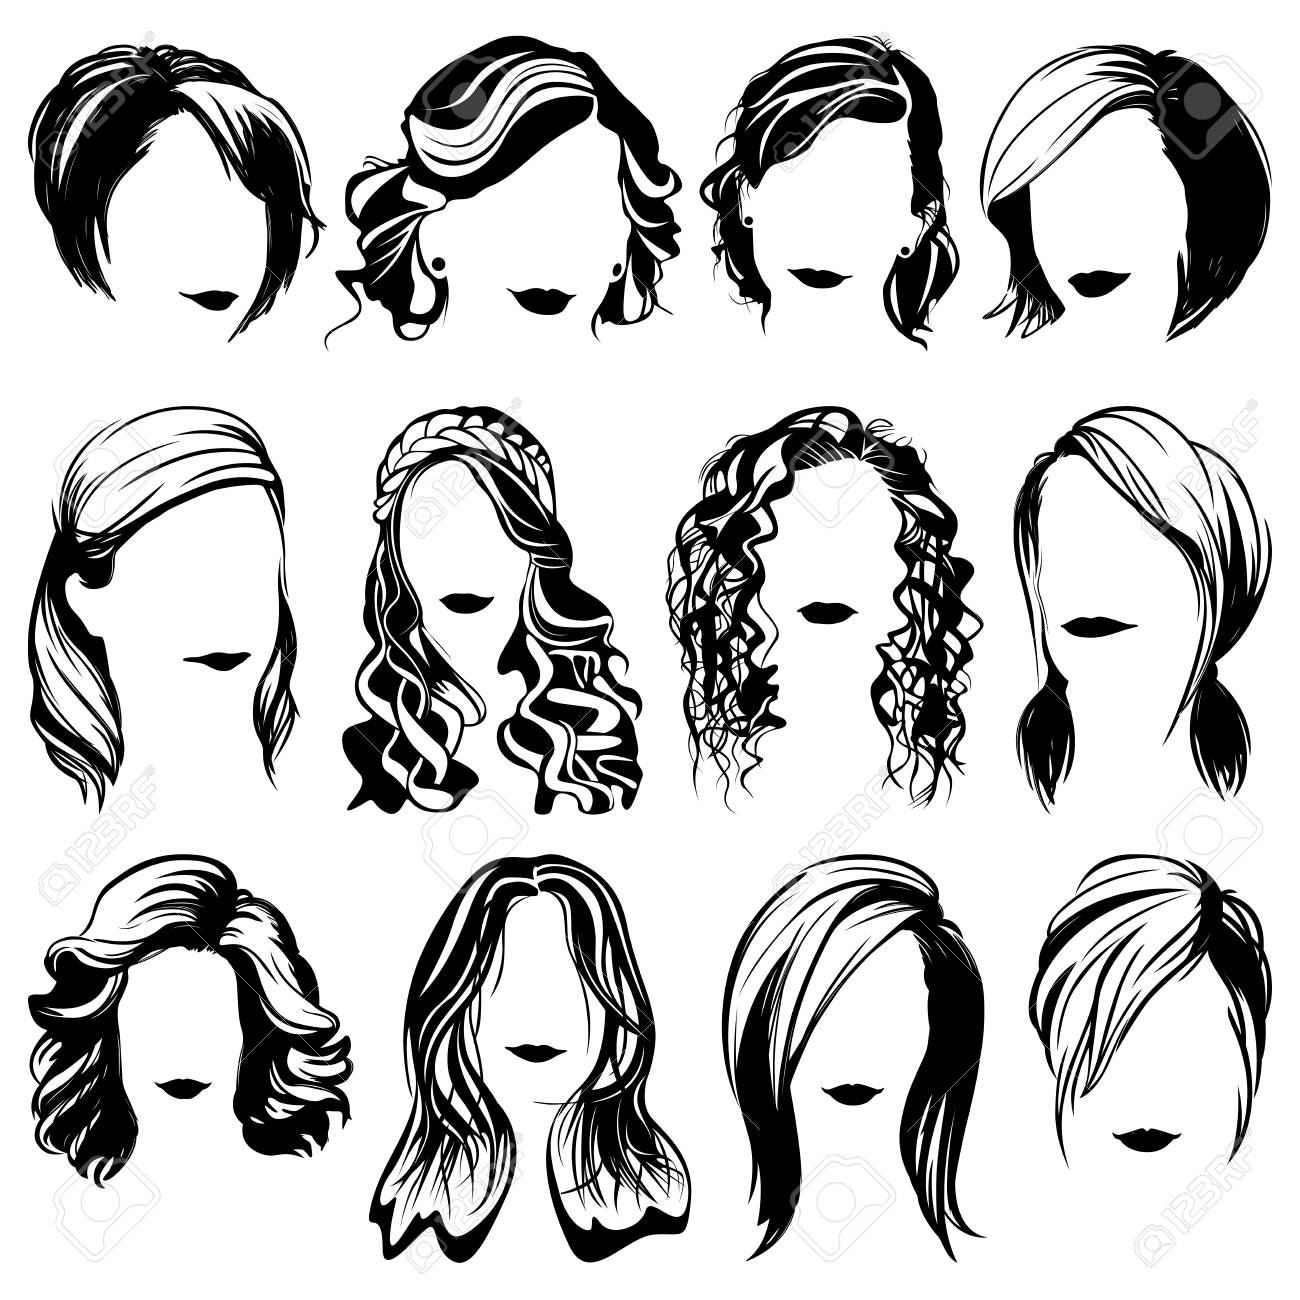 Fashion Women Hairstyle High Detailed Silhouettes